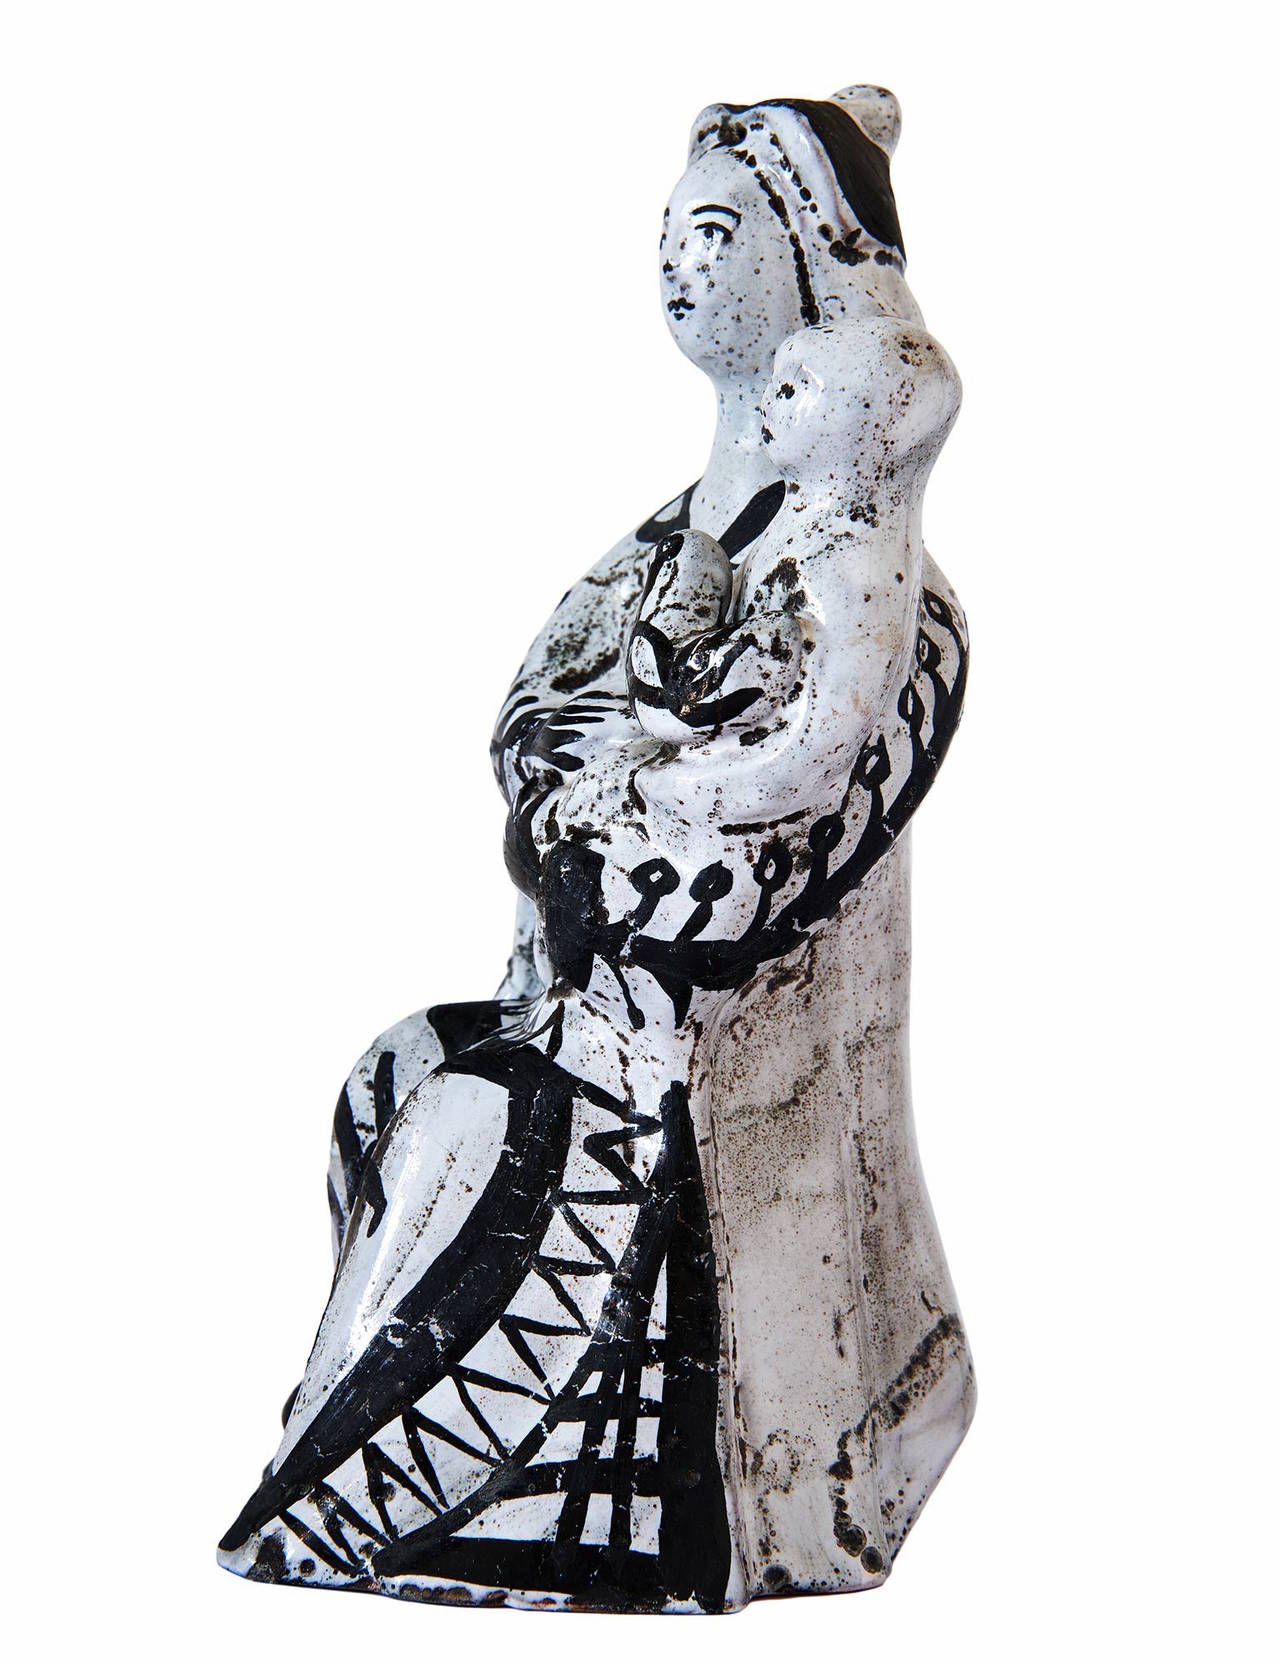 Ceramic Sculpture by Roger Capron In Excellent Condition For Sale In Los Angeles, CA